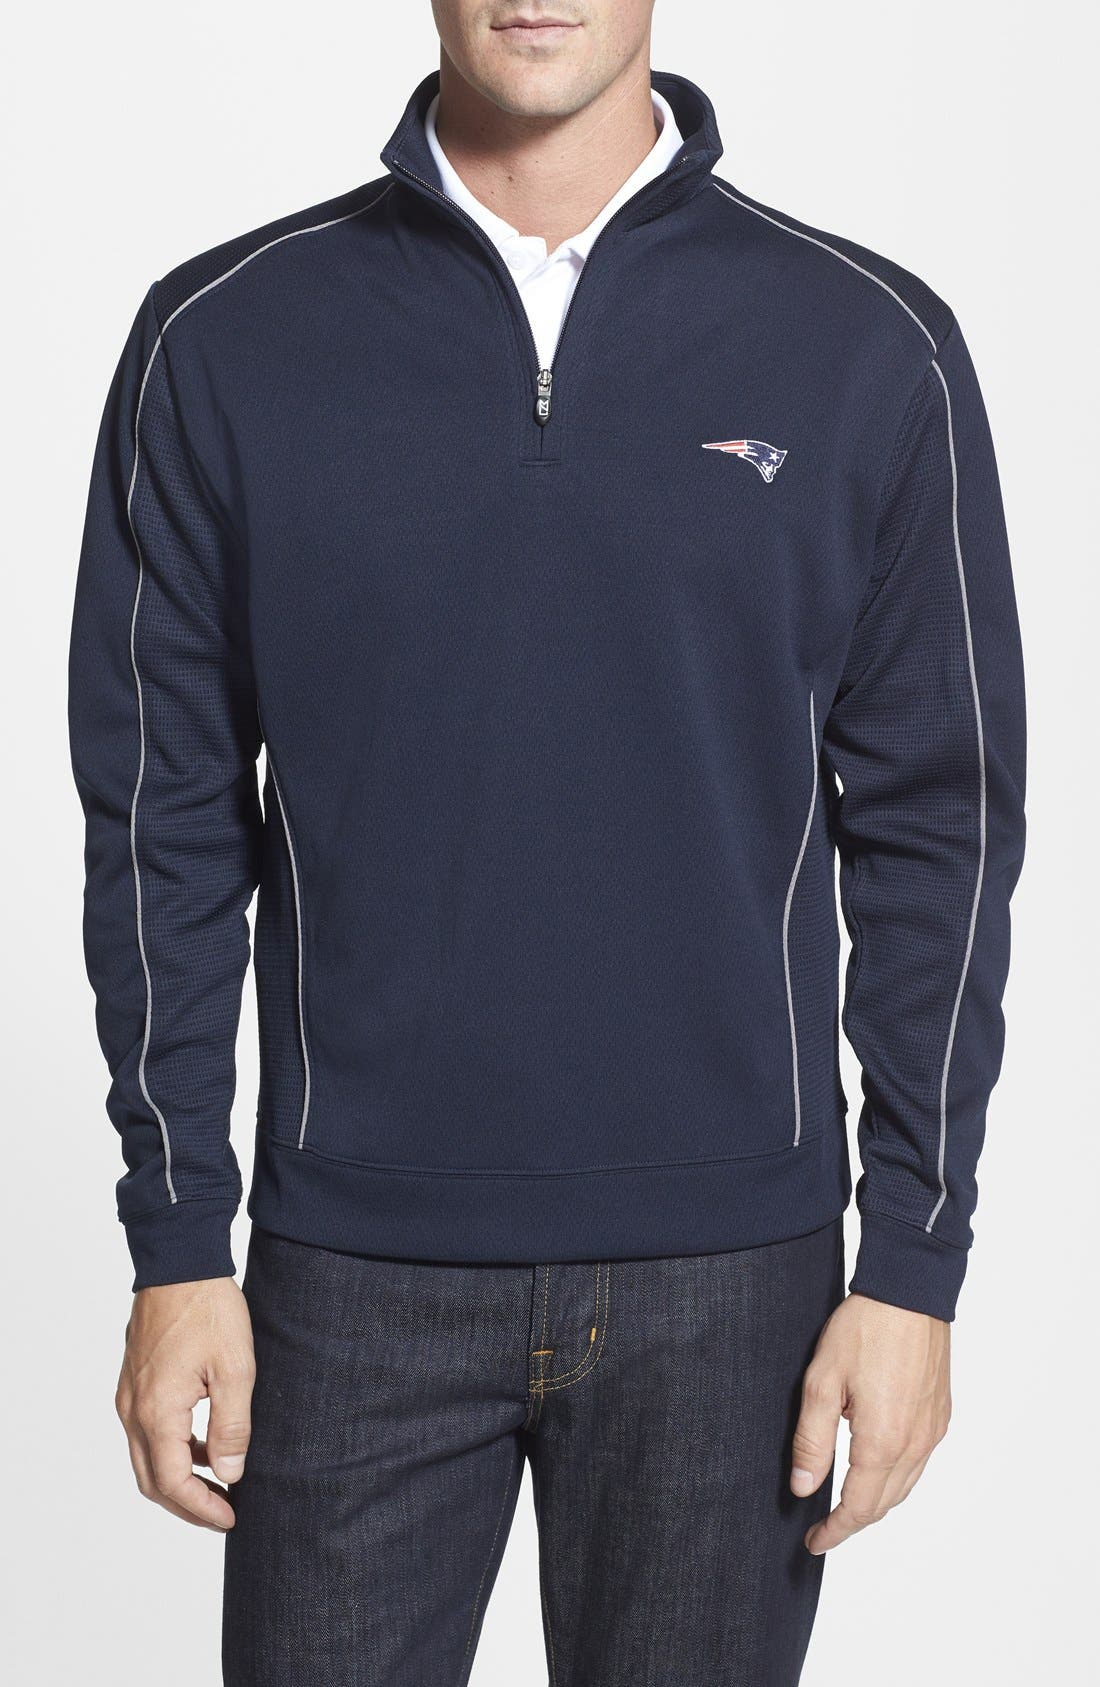 New England Patriots - Edge DryTec Moisture Wicking Half Zip Pullover,                             Main thumbnail 1, color,                             Navy Blue